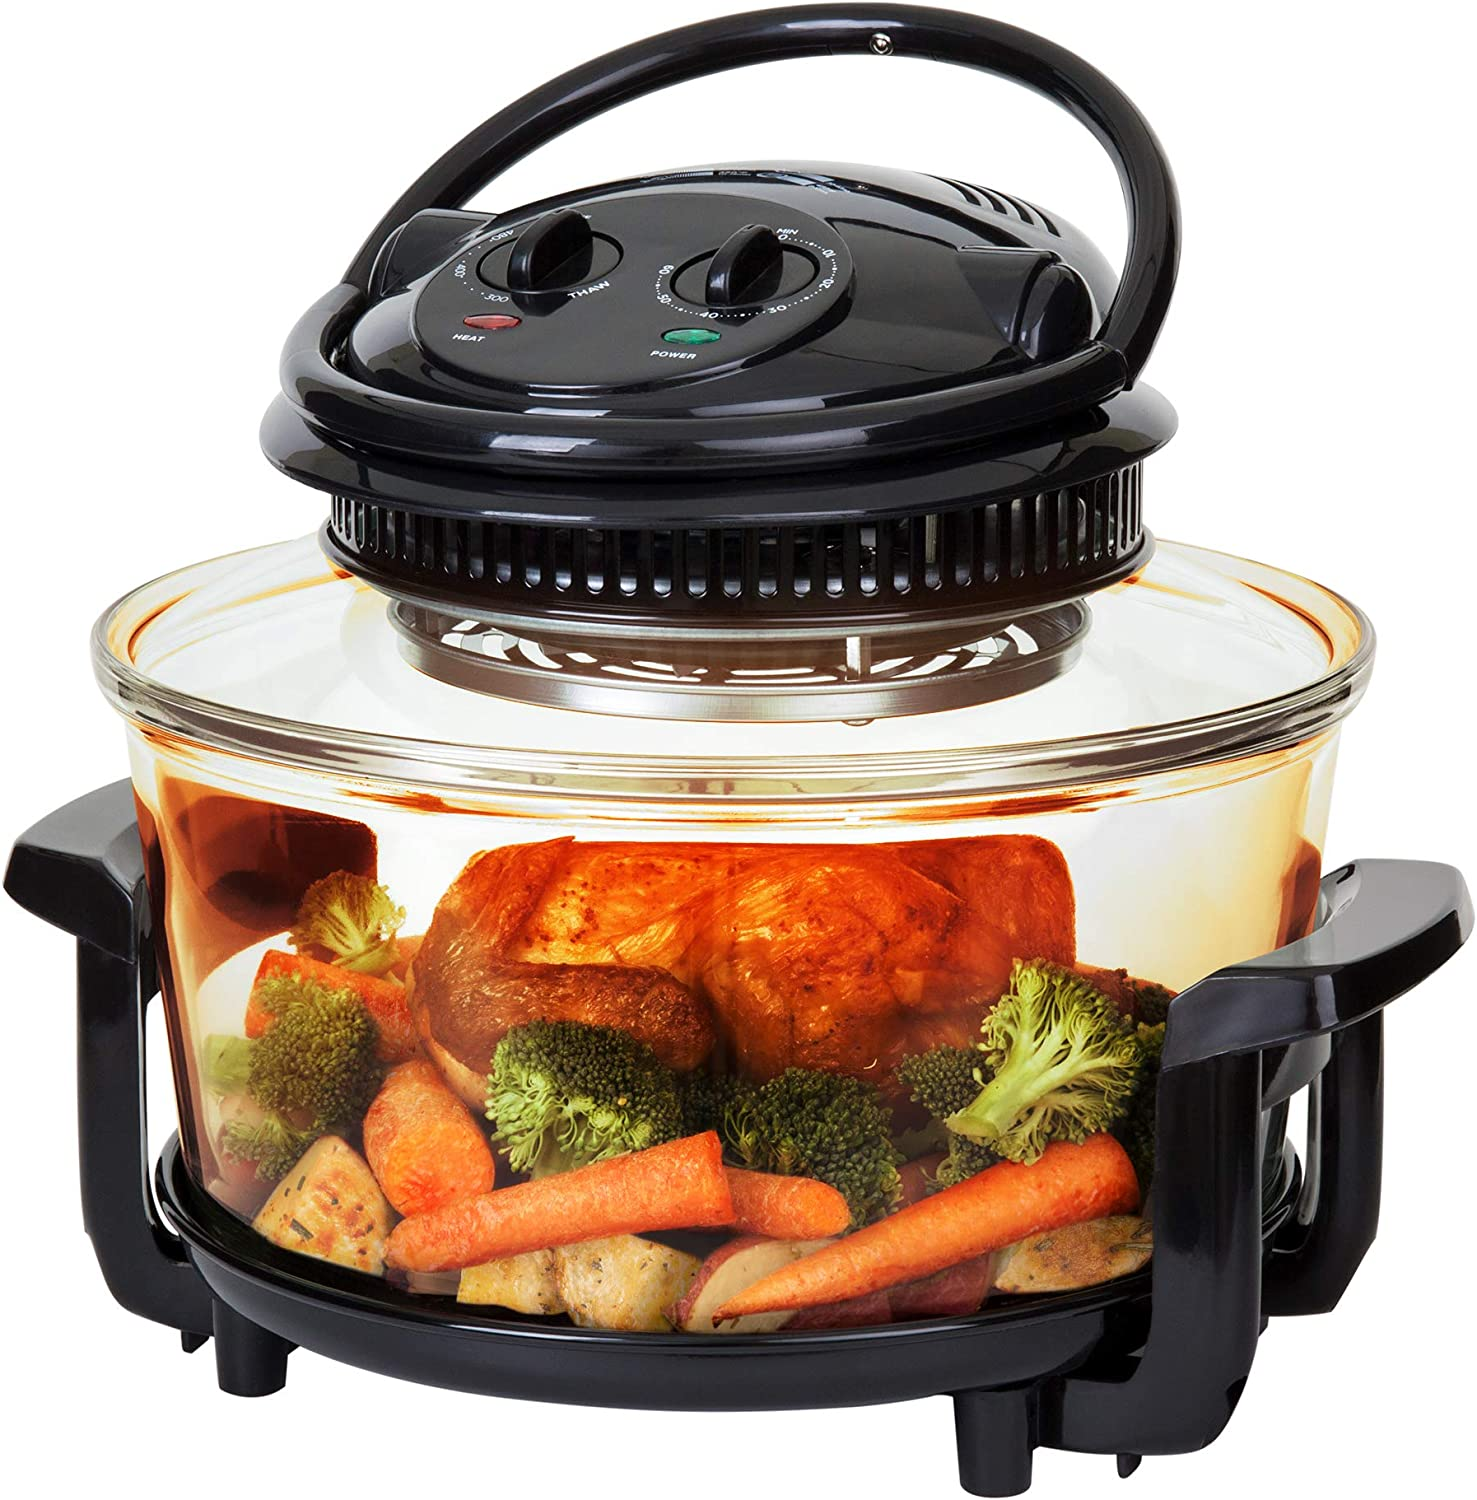 Best Choice Products 12L Electric Convection Glass Halogen Oven for Baking, Roasting, Steaming, Grilling w Air Fryer Capabilities, Temperature and Time Dials, Automatic Shutoff, 2 Wire Racks, Tongs